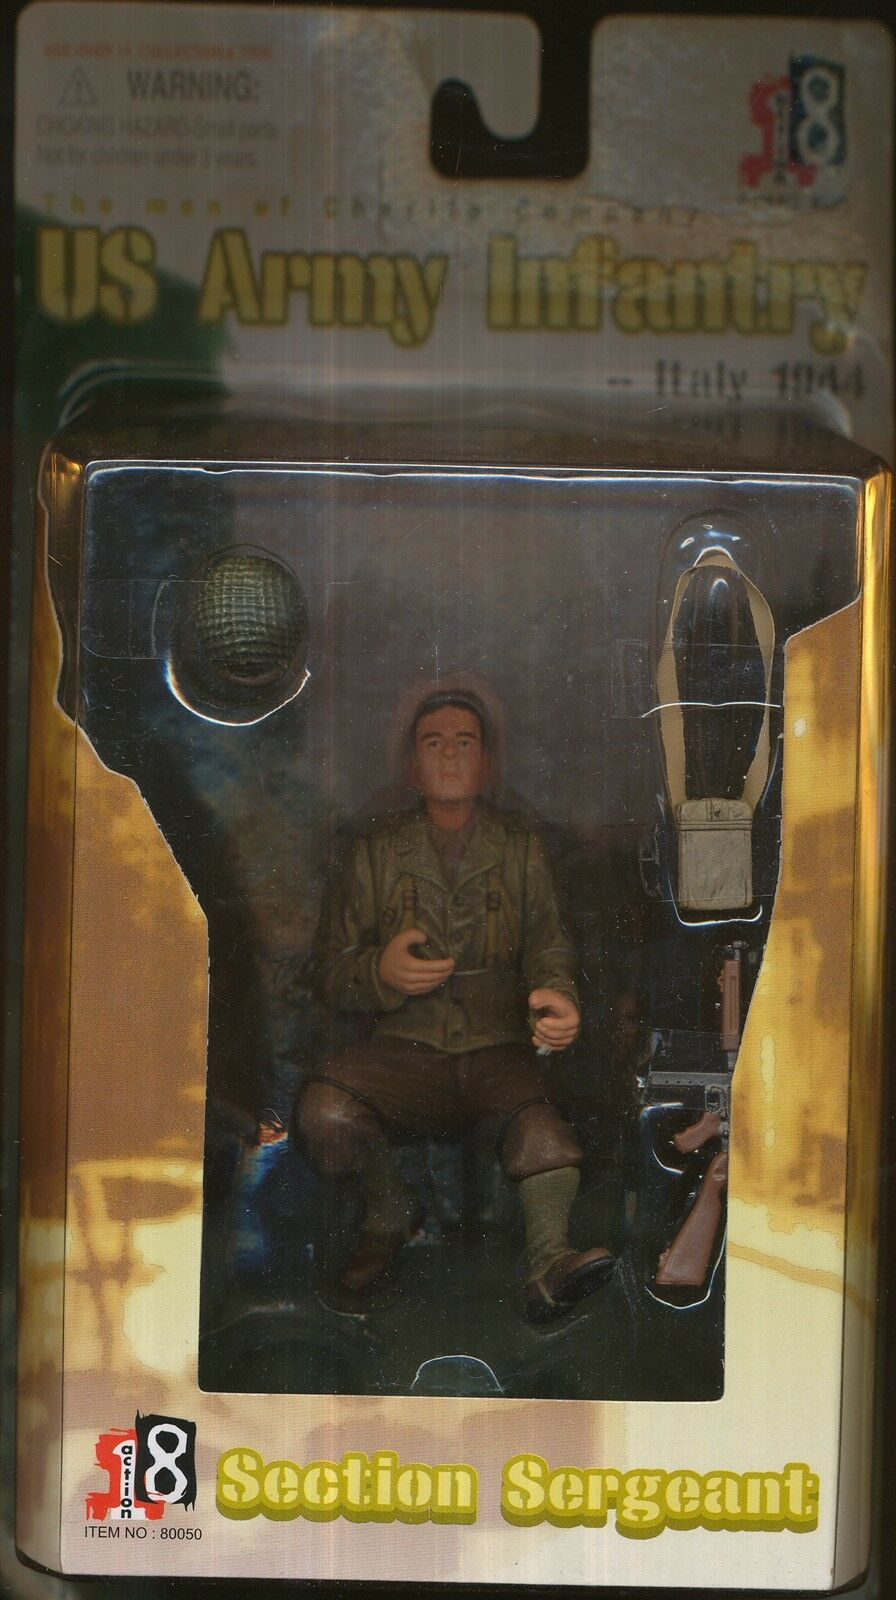 2004 DRAGON MODELS ACTION 8 SECTION SERGEANT ARMY ITALY 1944 3 1 2  FIGURE